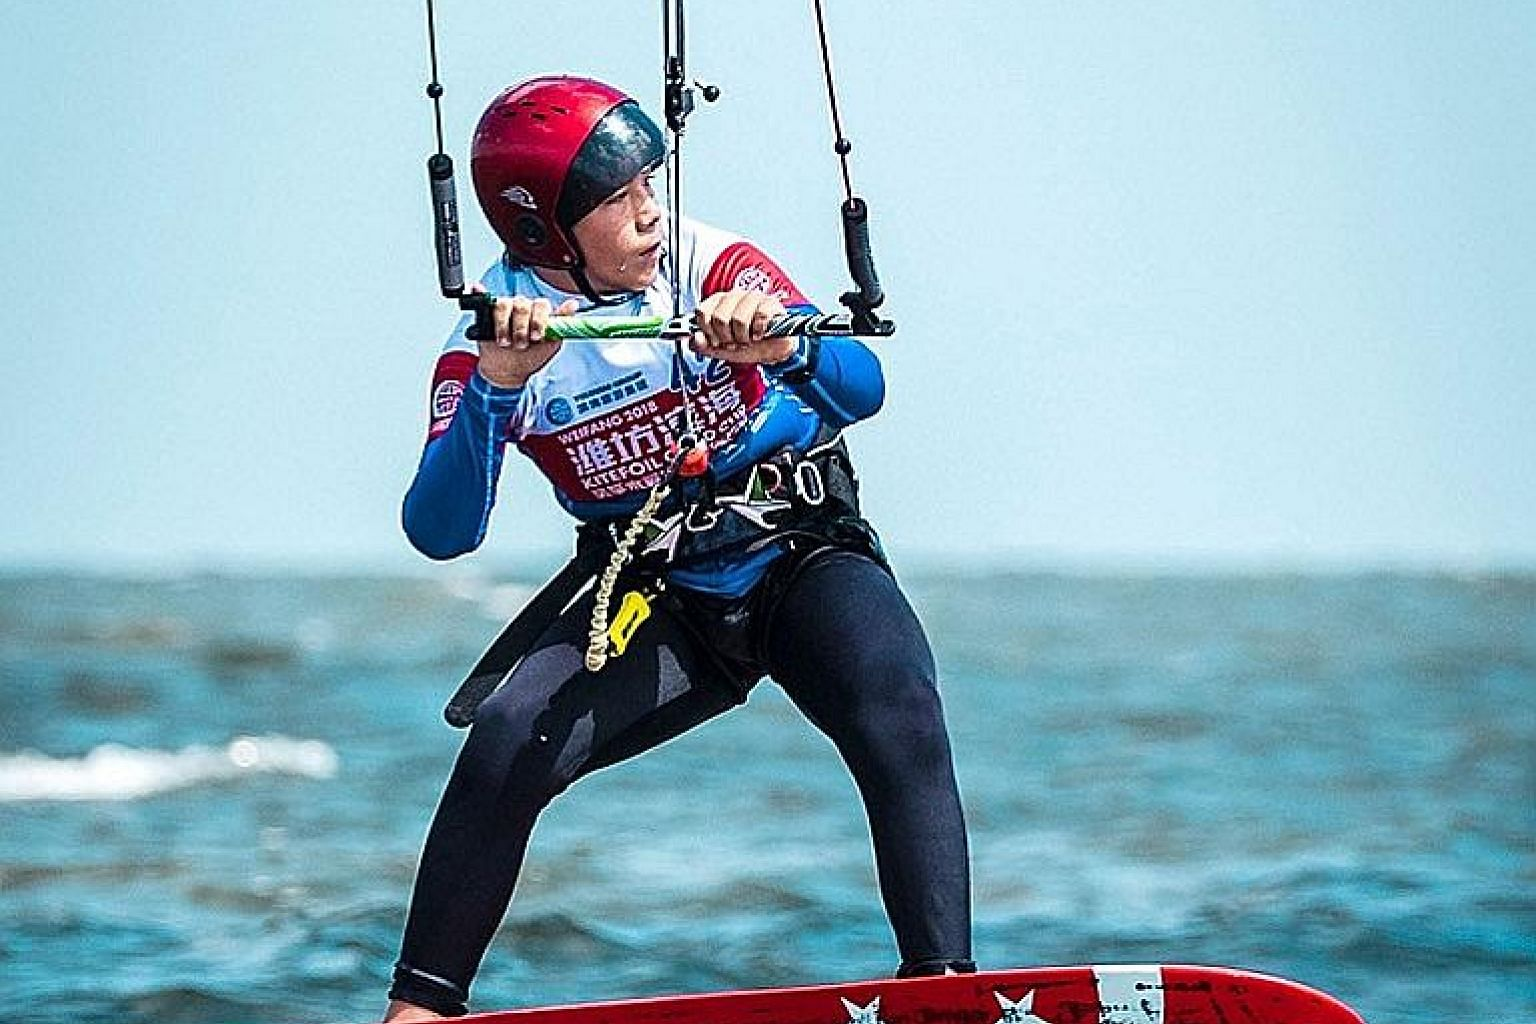 Singaporean kiteboarder Maximilian Maeder, 12, competing at the KiteFoil GoldCup World Series held in Weifang, China from Aug 31 to Sept 5. Kiteboarding is slated to be included at the 2024 Paris Olympics.